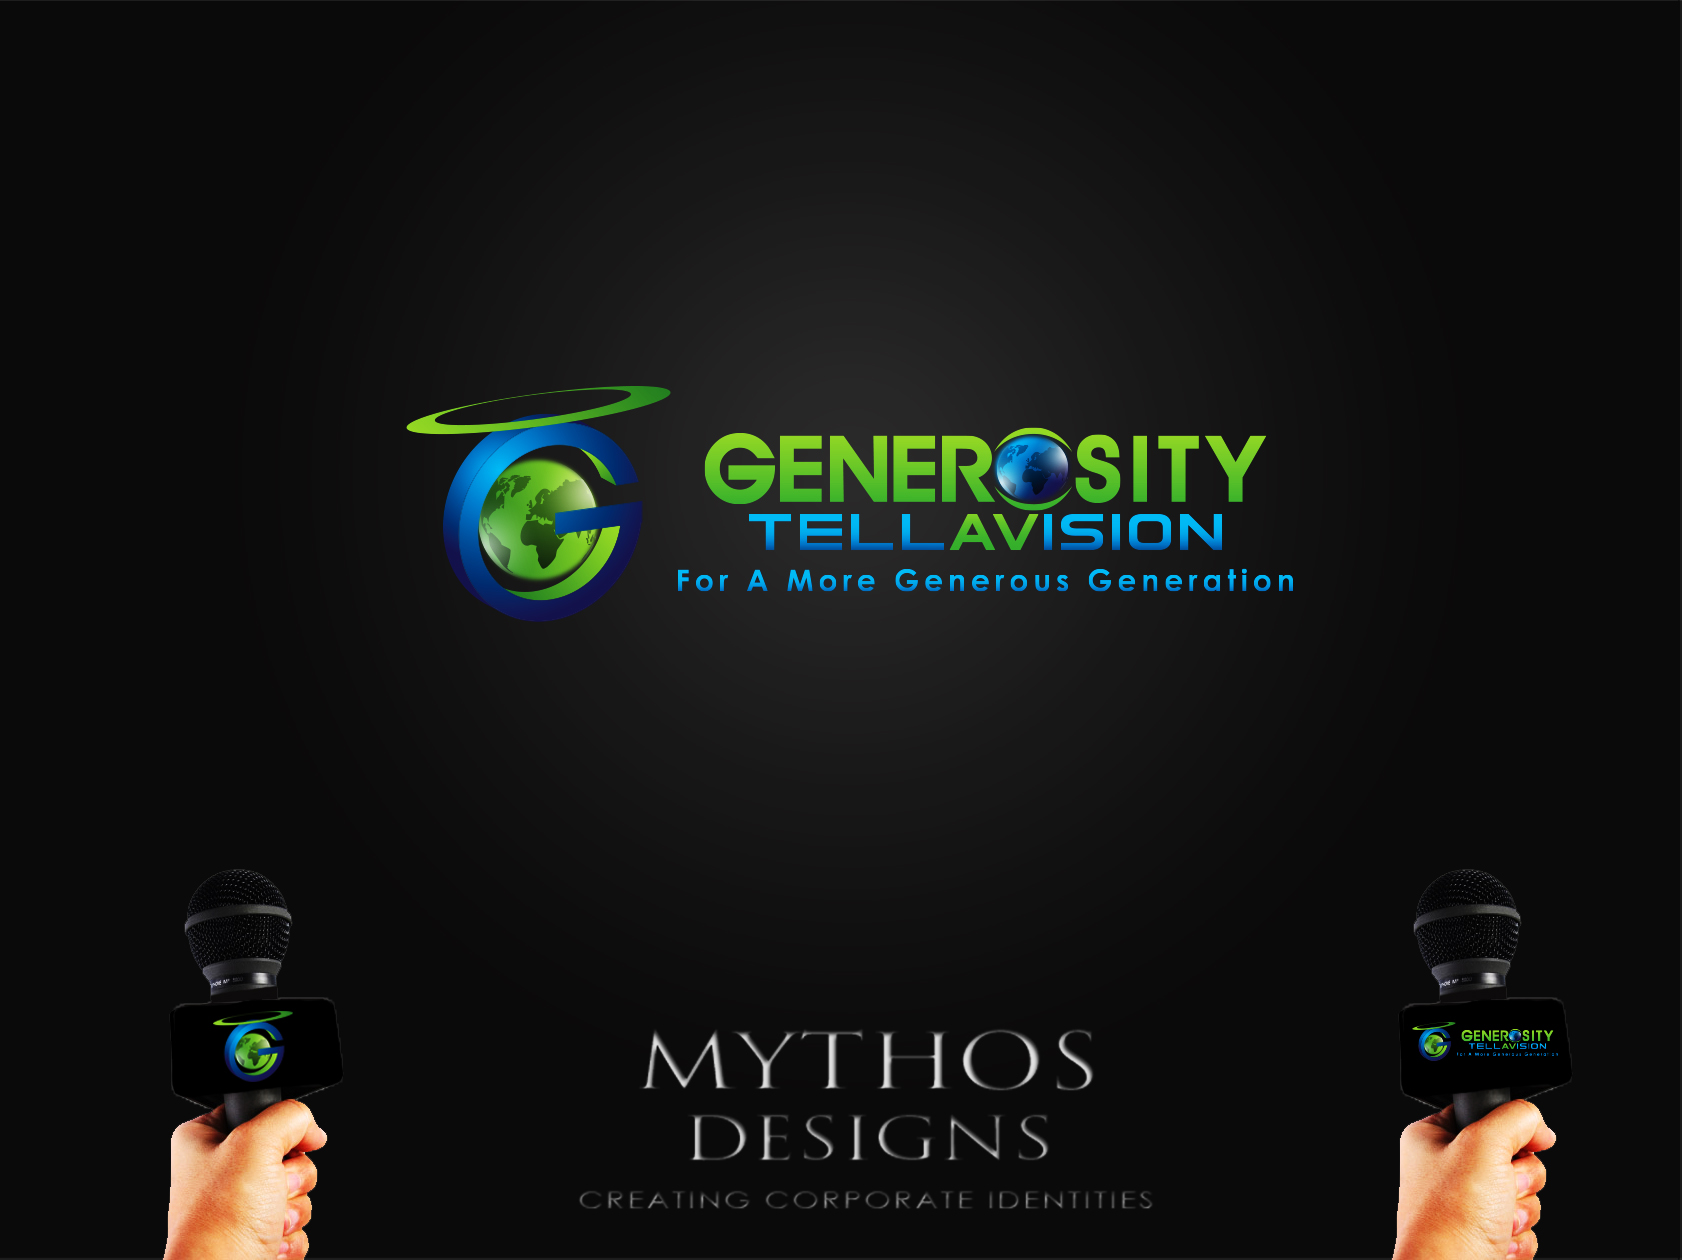 Logo Design by Mythos Designs - Entry No. 112 in the Logo Design Contest Artistic Logo Design for Generosity TellAVision.